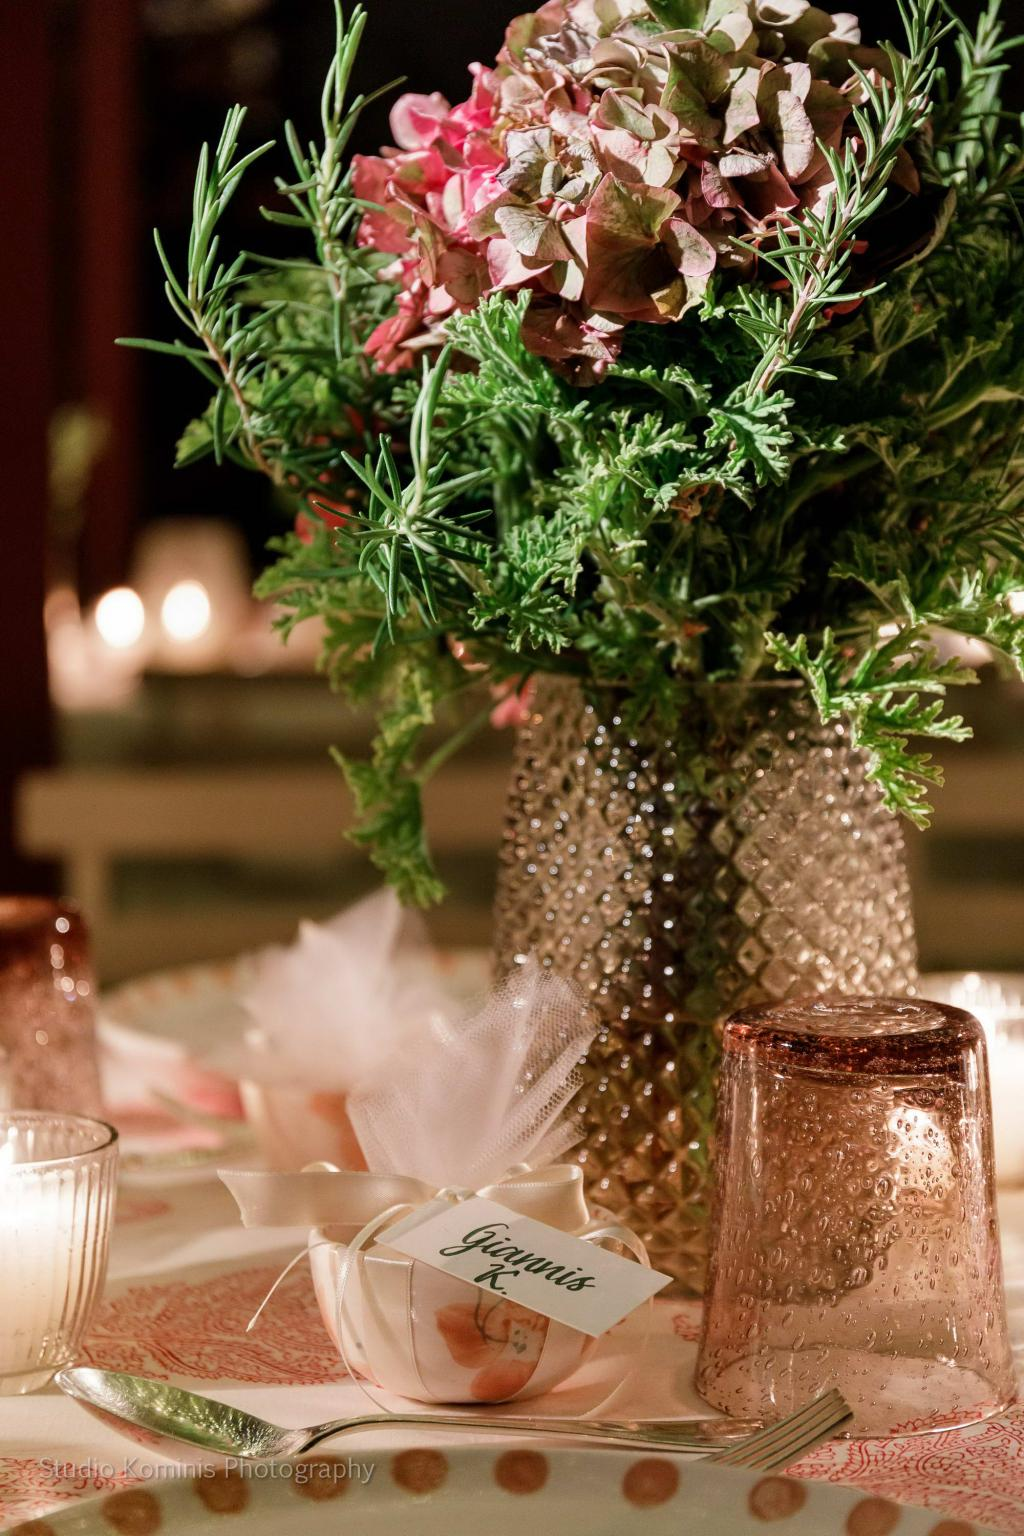 N&A Andros wedding - Image 22